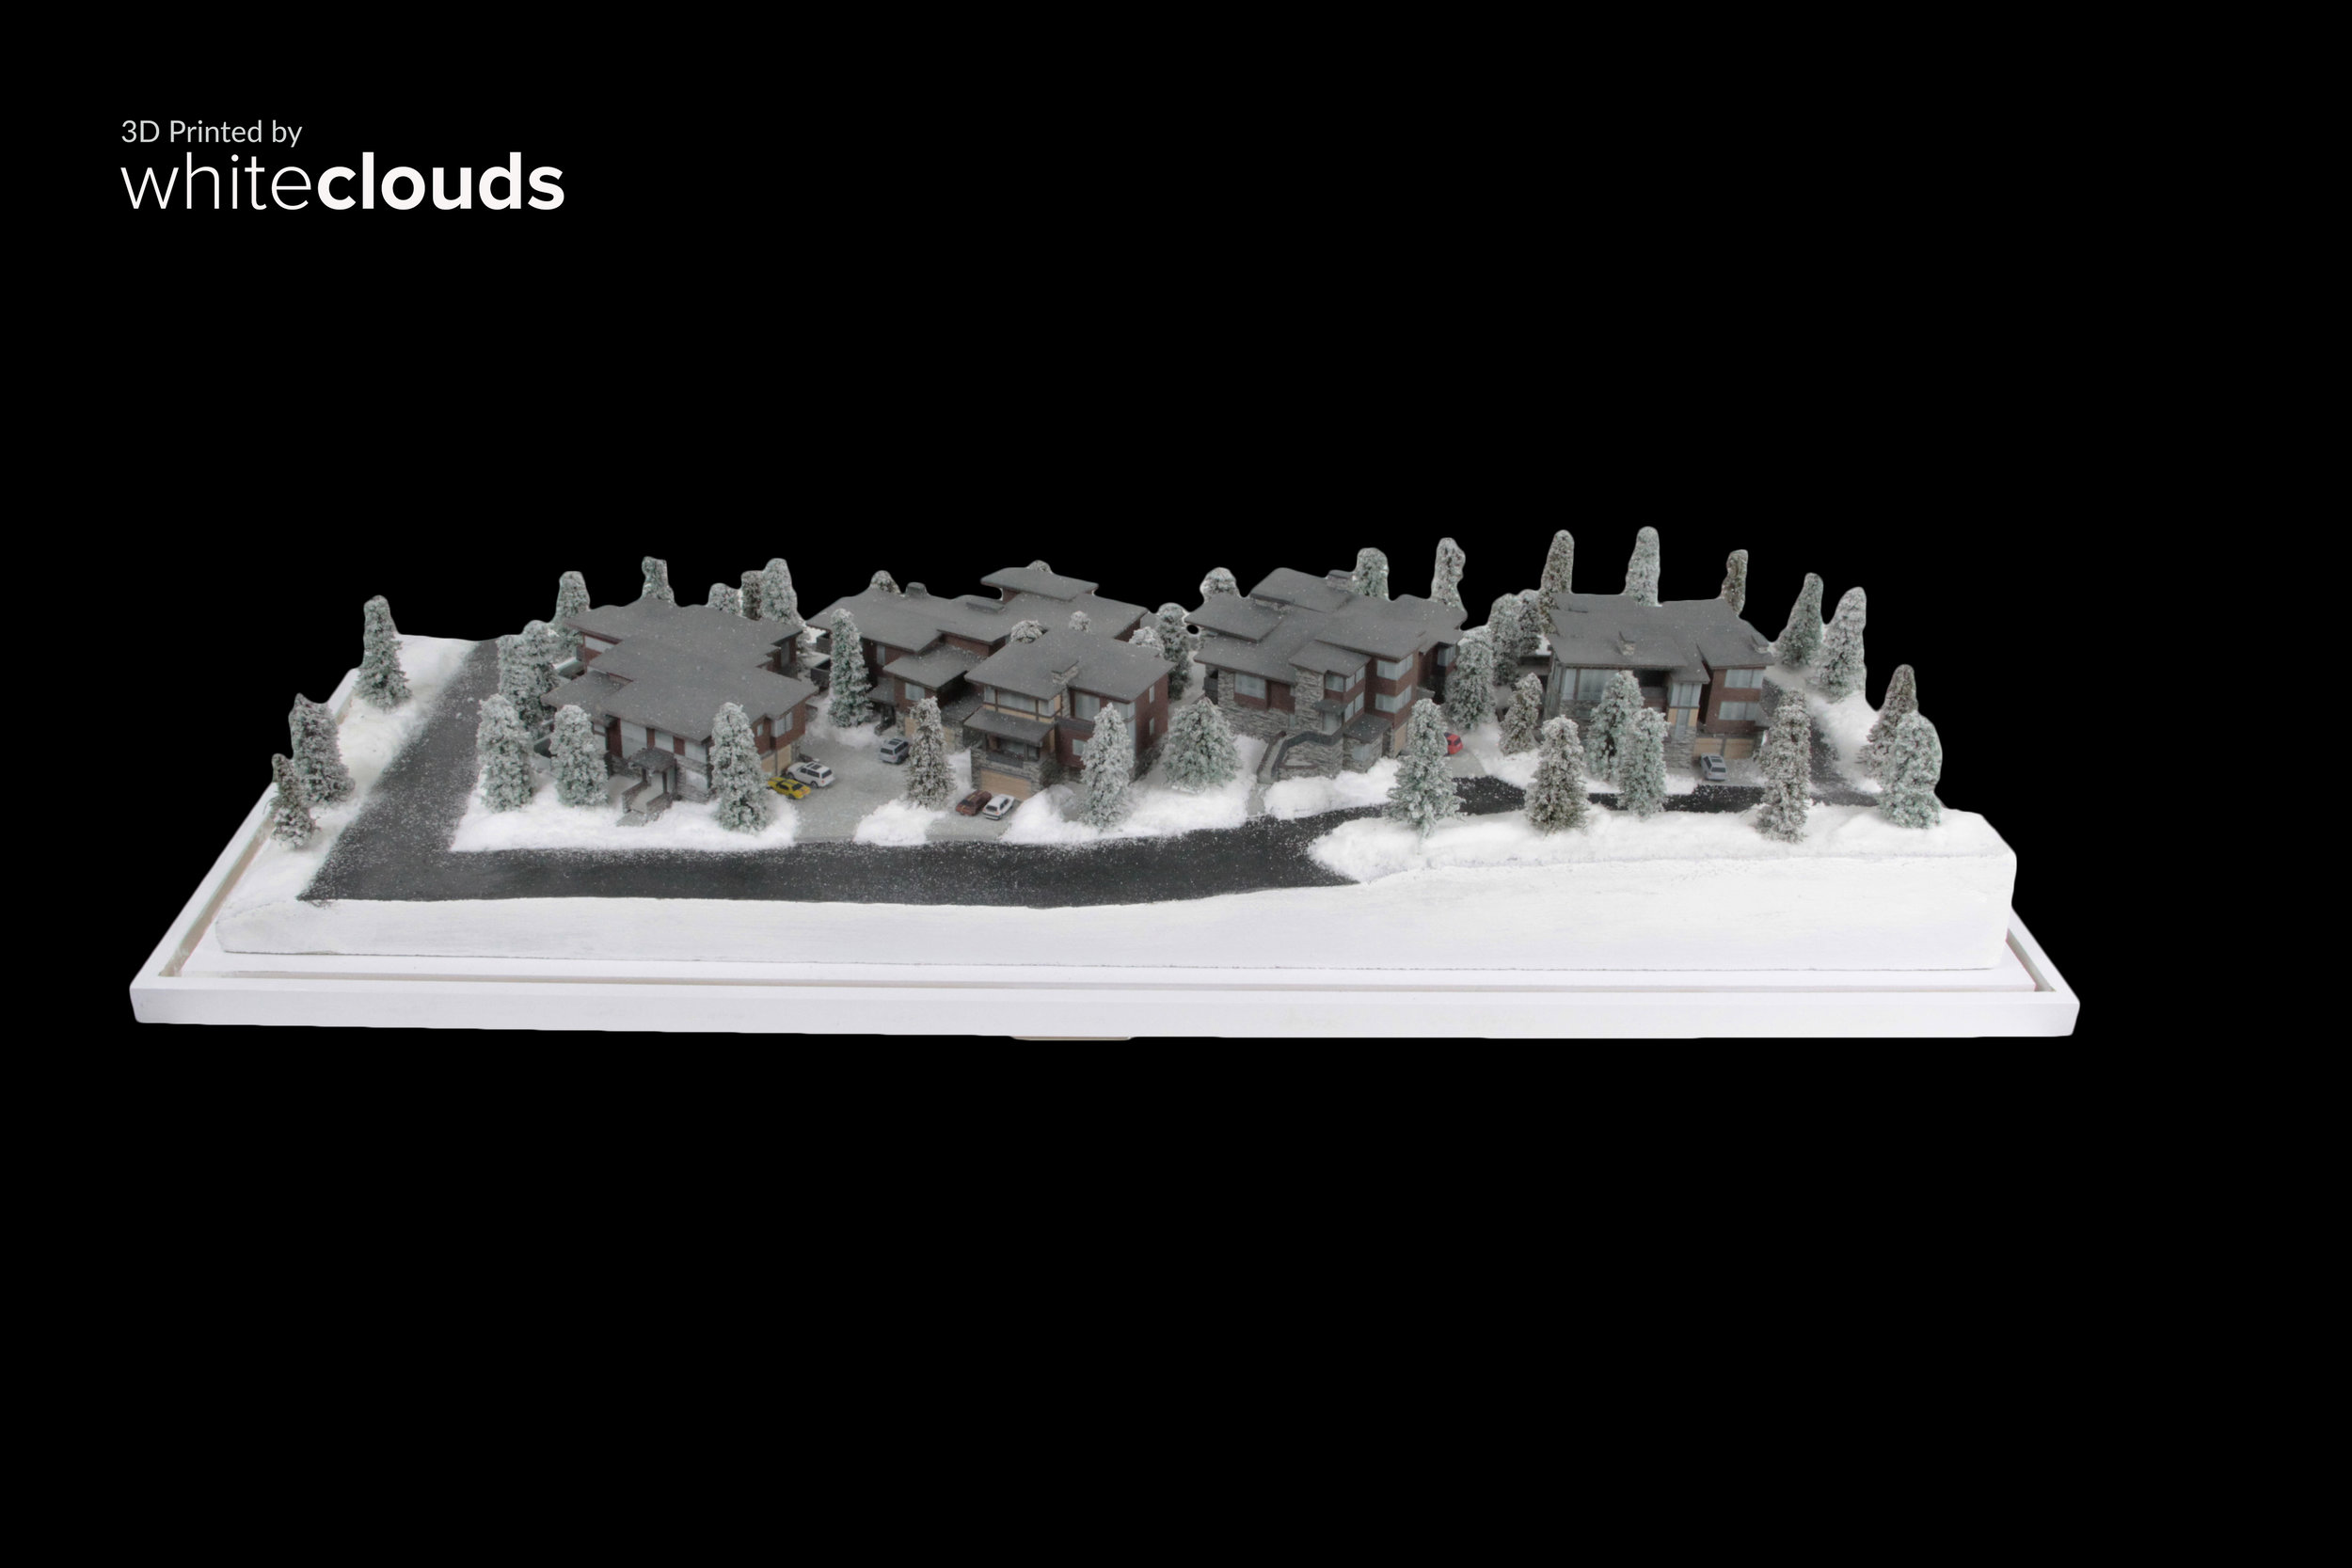 3D-Printed-WhiteClouds-Sunvalley-Architecture-Sunvalley-Website-2.jpg